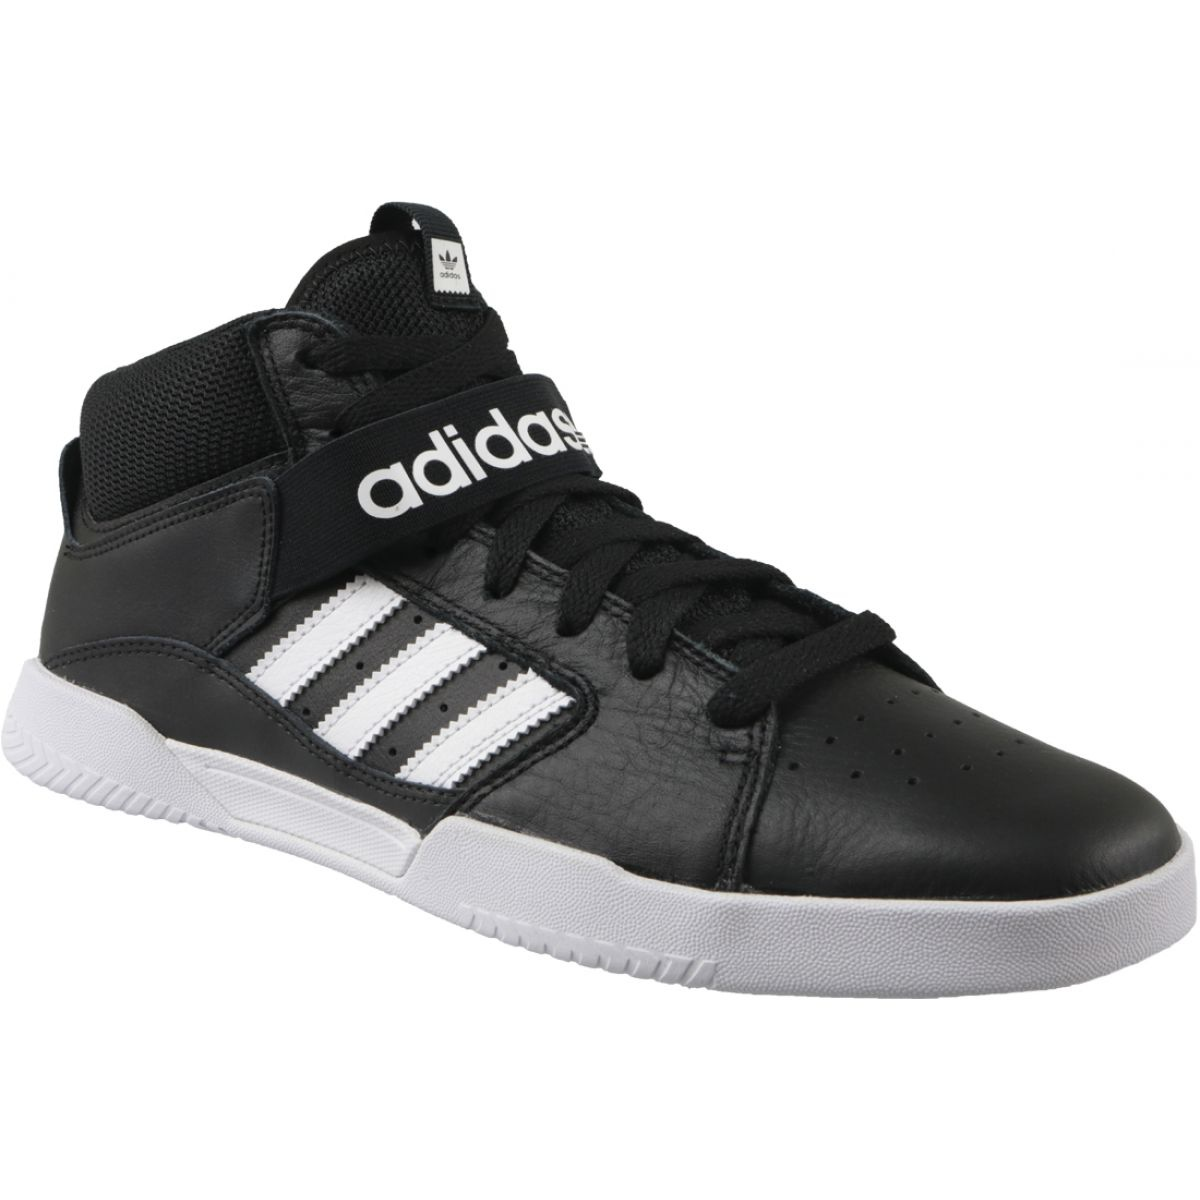 Details about Adidas Vrx Cup Mid M B41479 shoes black